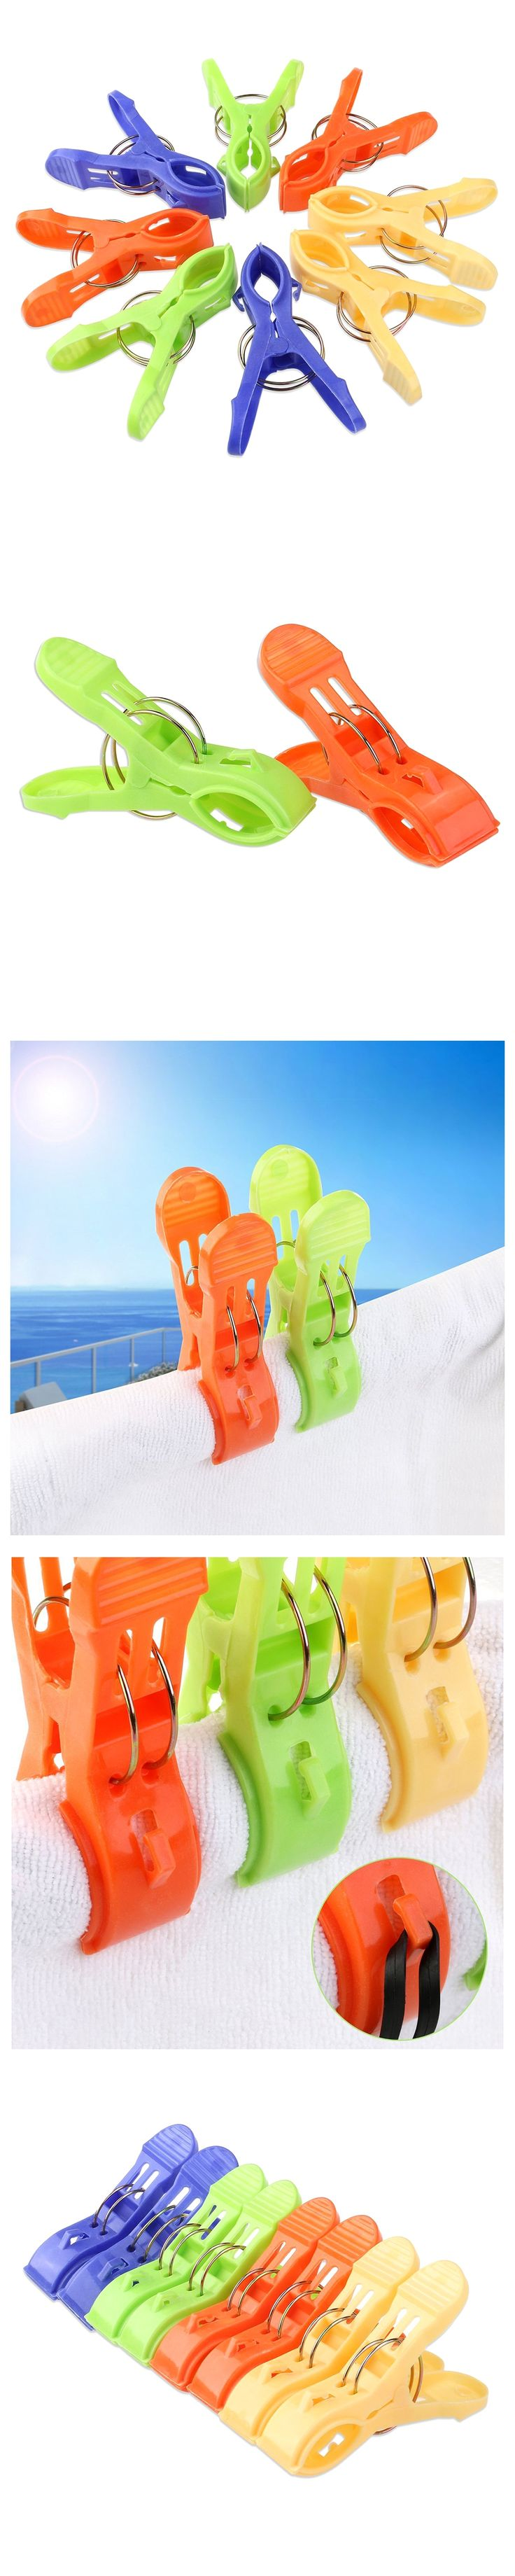 8pcs Plastic Beach Towel Clips Quilt Clips Yellow, green, blue, orange L